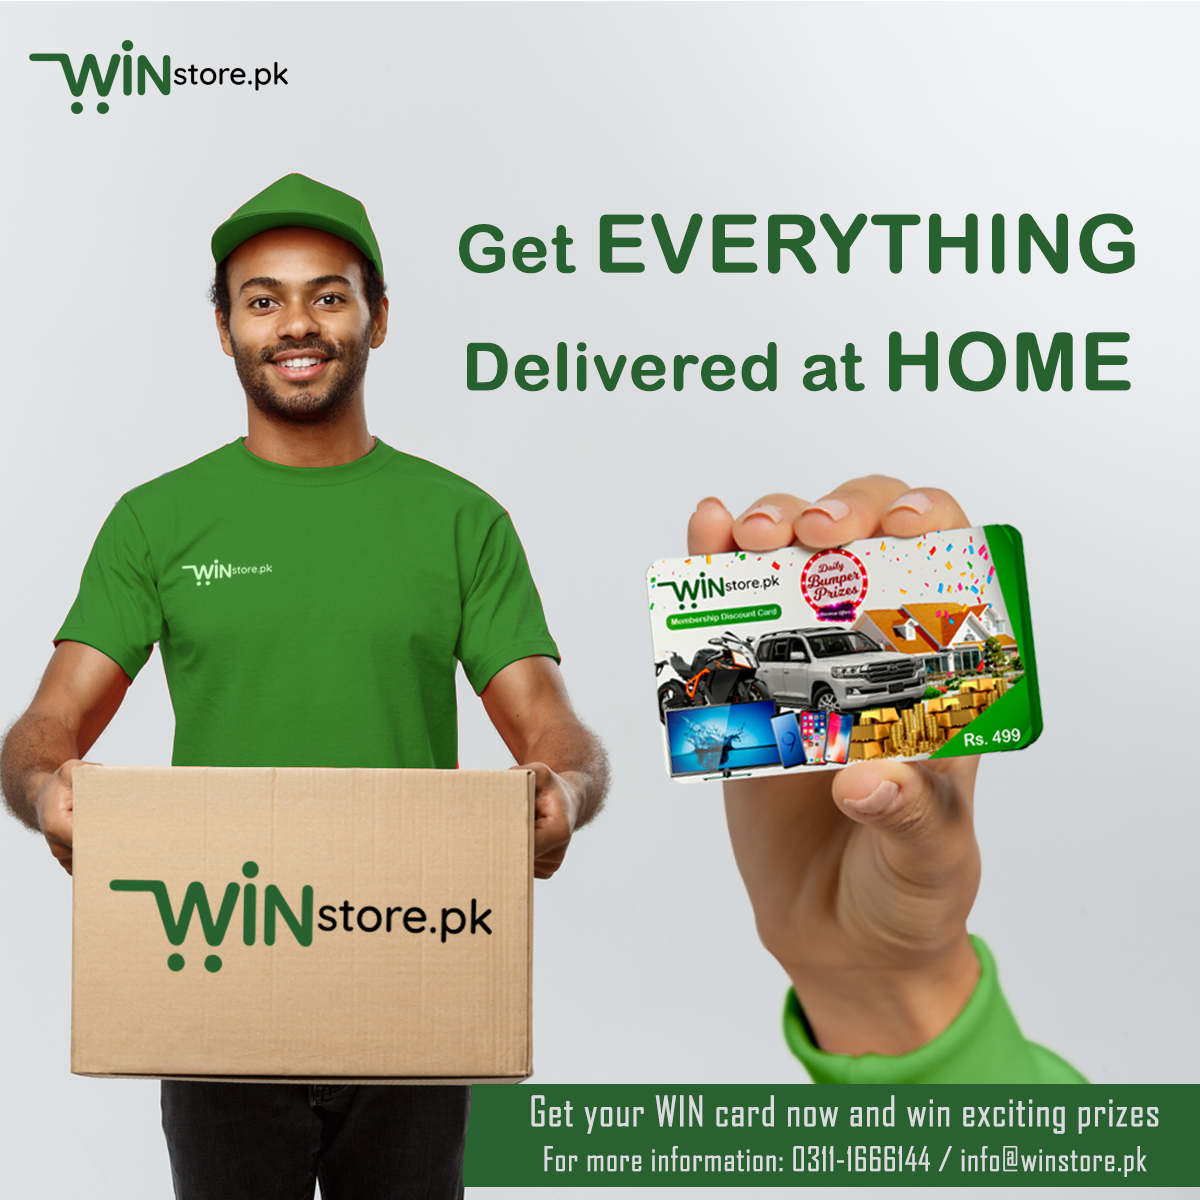 Stay home, get every thing at your doorstep. Visit our Website for more information: https://winstore.pk Contact Us: +923111666144 #onlineshopping #fashion #onlineshop #shopping #style #onlinestore #onlineboutique #online #winstore #accessories #handmade #shoponlinepic.twitter.com/YFrdVxMxMT